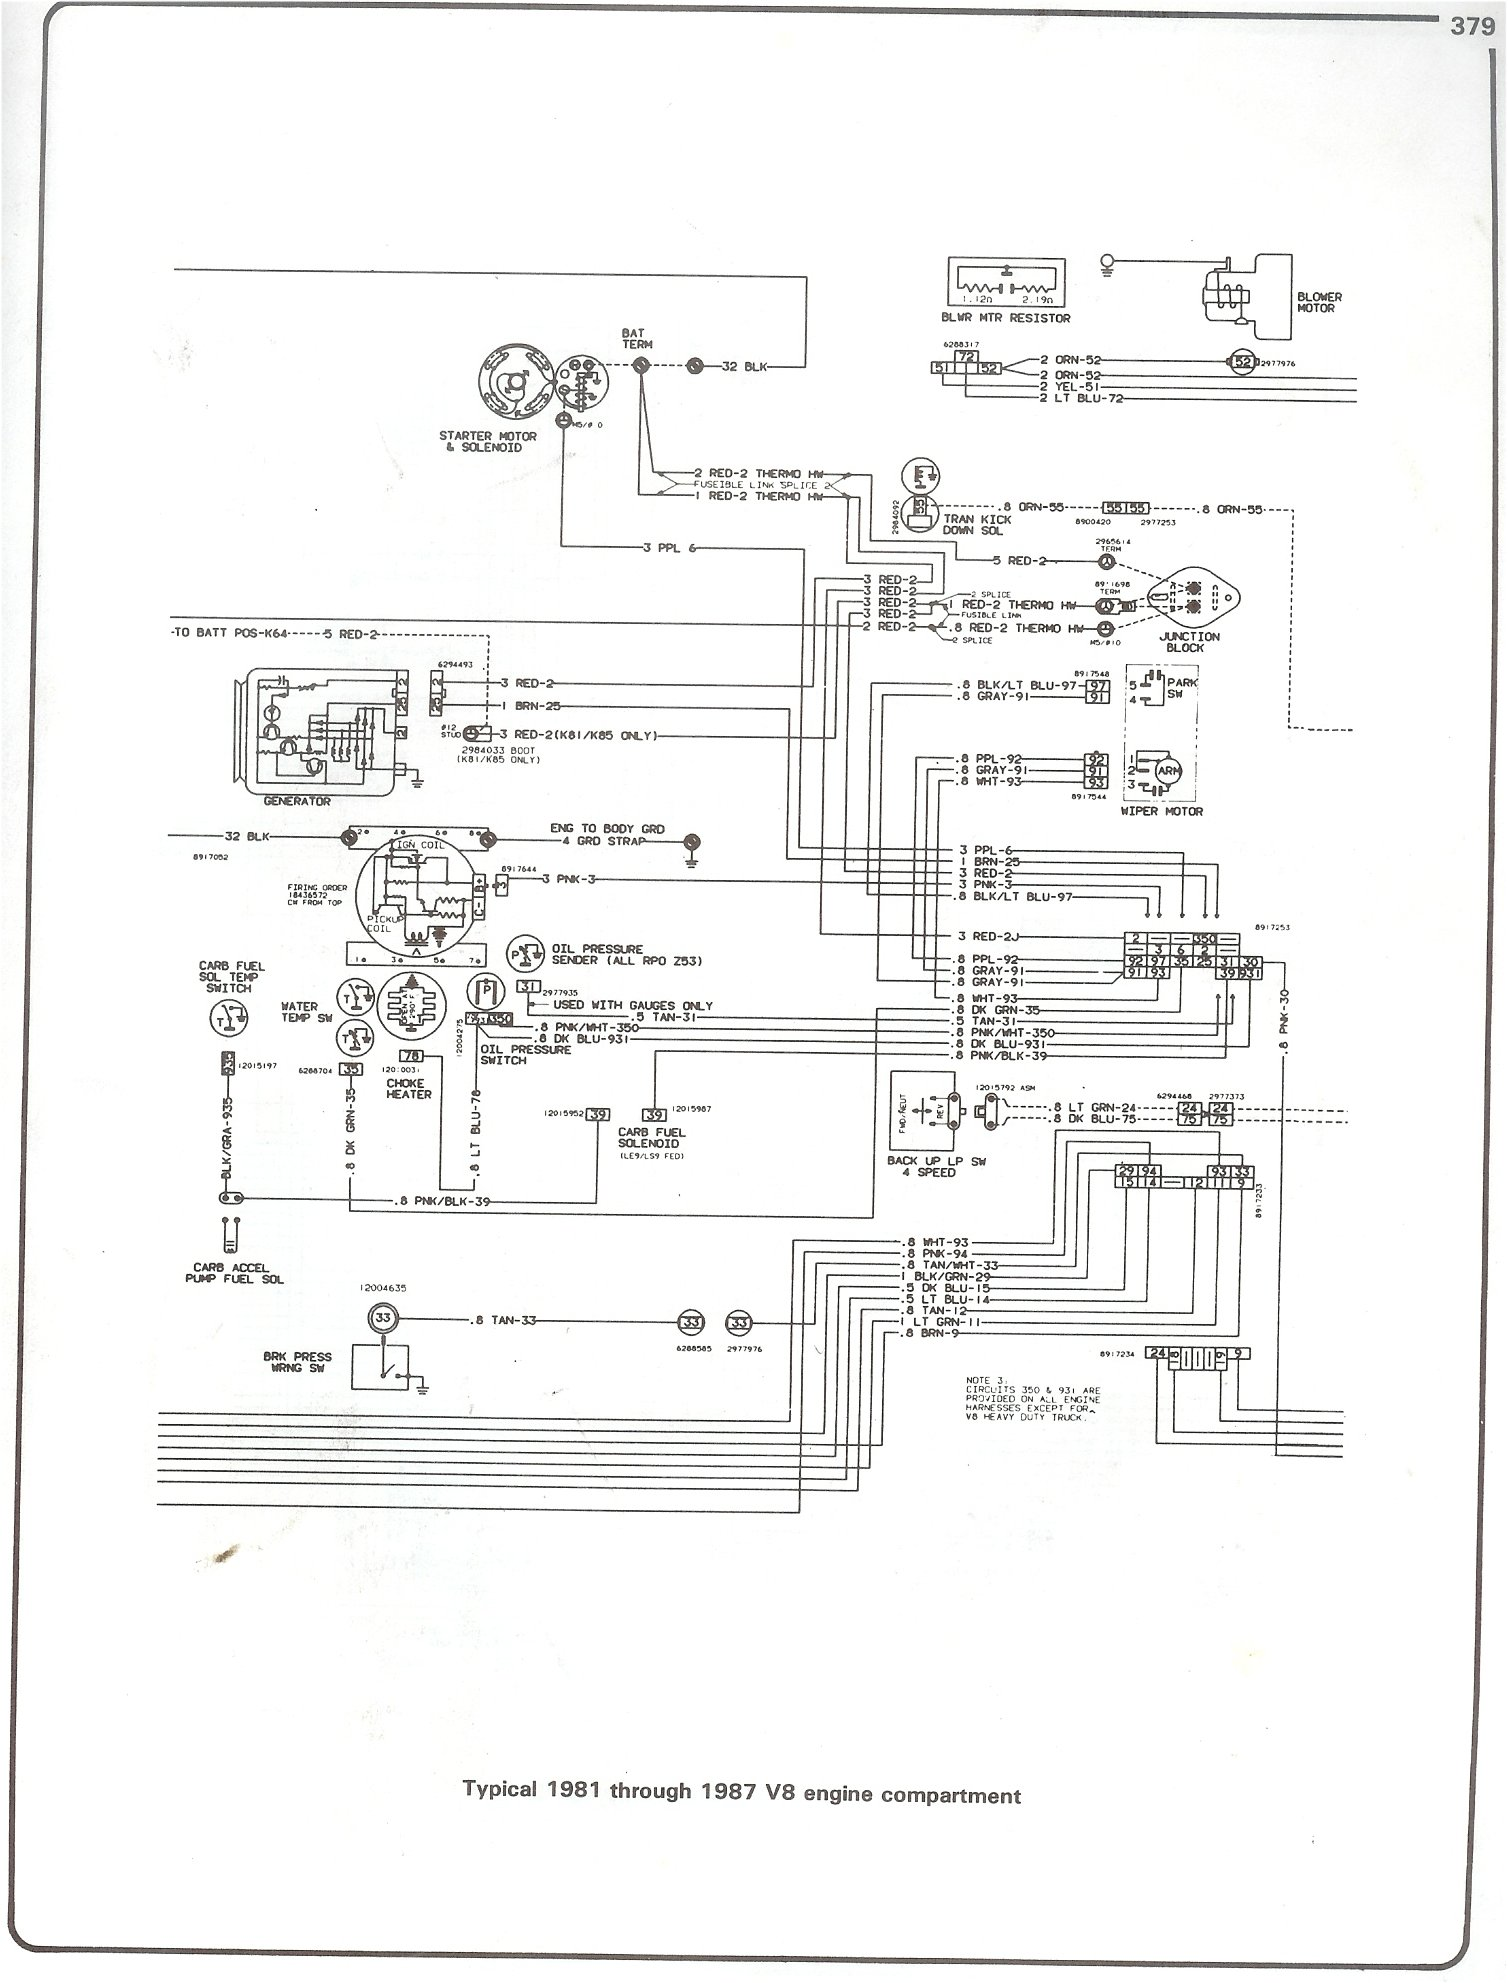 81 87_V8_engine complete 73 87 wiring diagrams 73-87 Chevy Wiring Harness at readyjetset.co